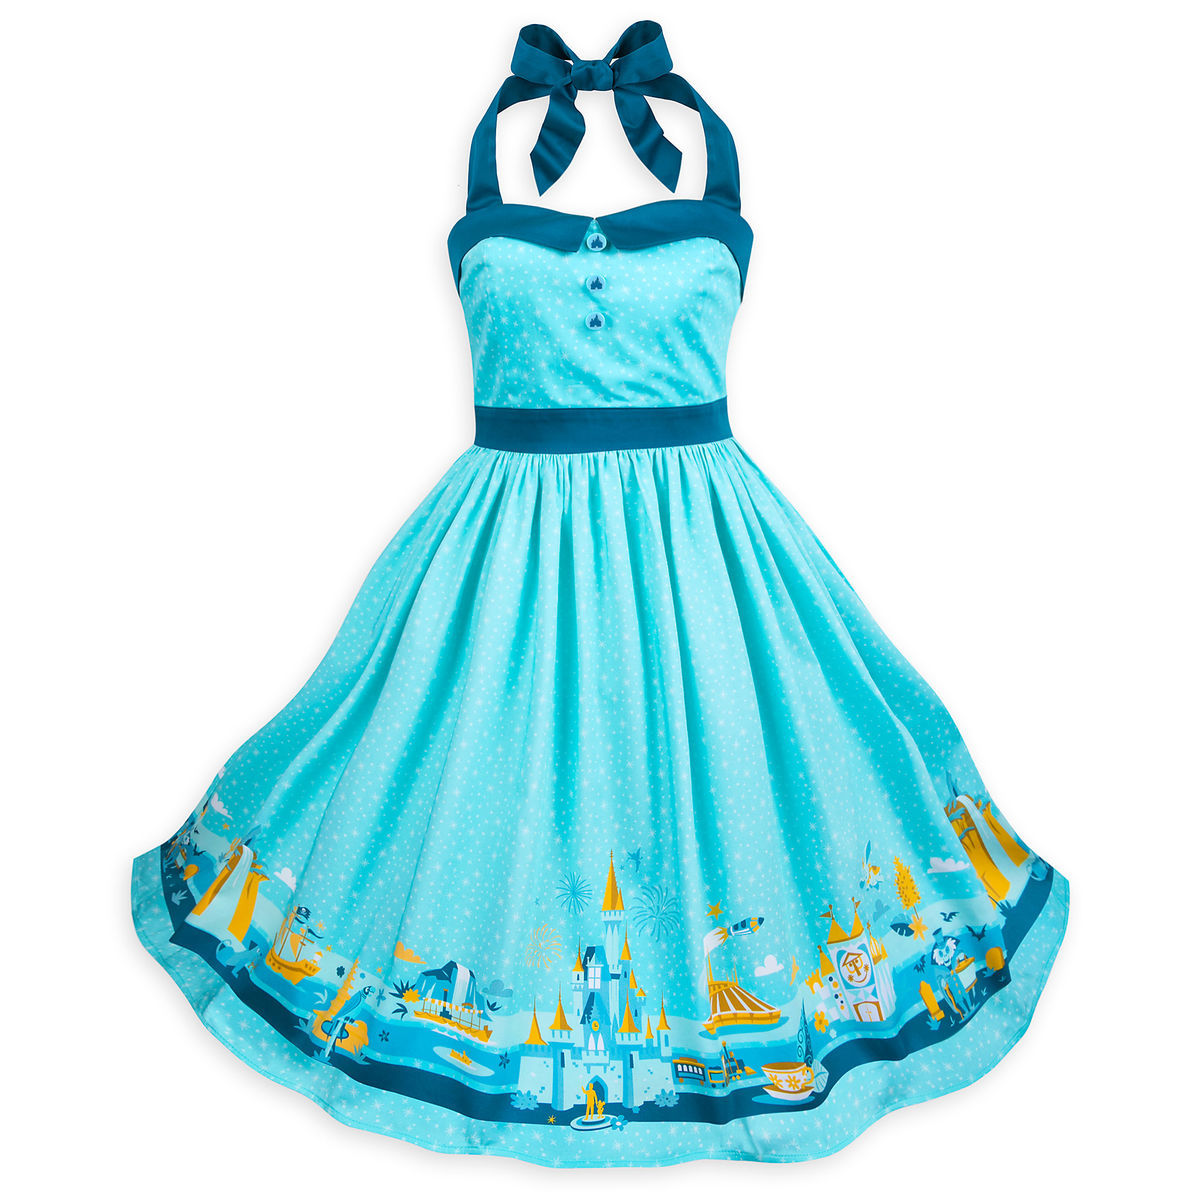 Walt Disney World Dress for Women | shopDisney